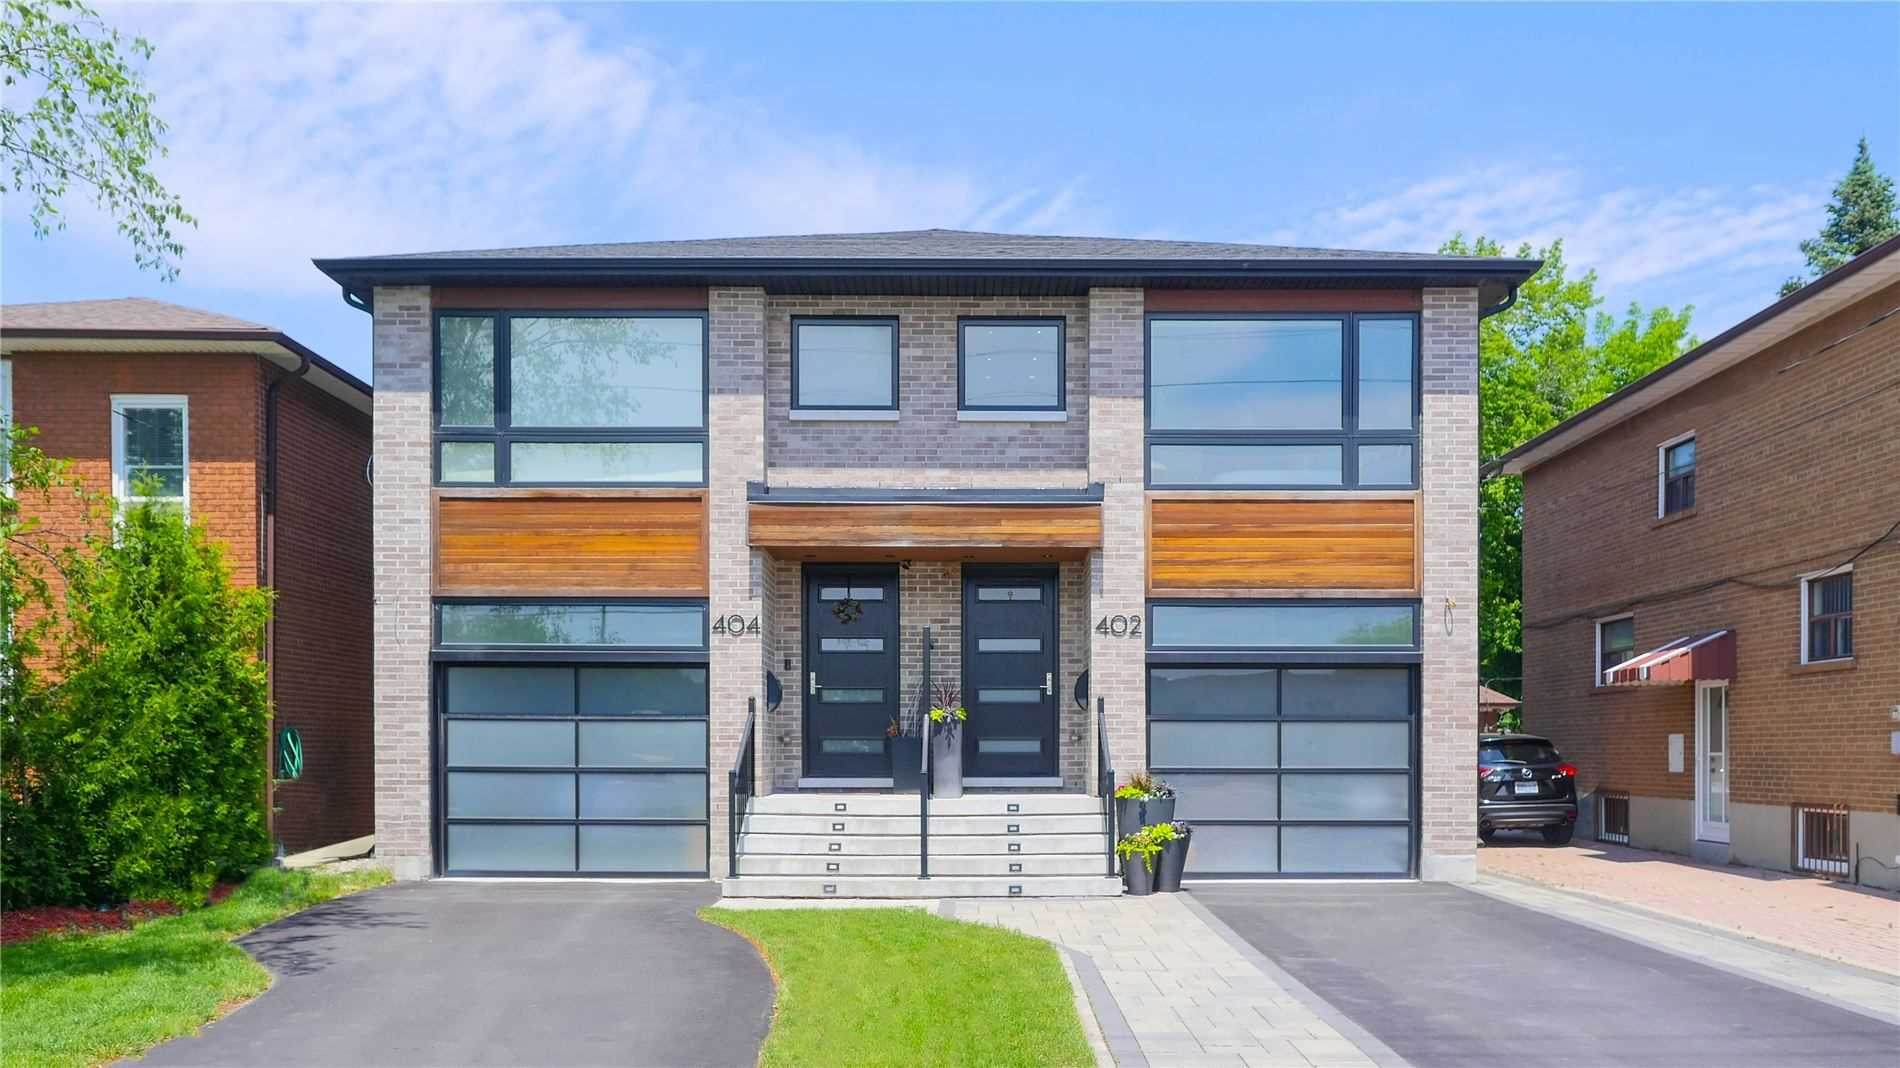 402 Horner Ave, Toronto, Ontario M8W2A4, 3 Bedrooms Bedrooms, 6 Rooms Rooms,4 BathroomsBathrooms,Semi-detached,For Sale,Horner,W5392910